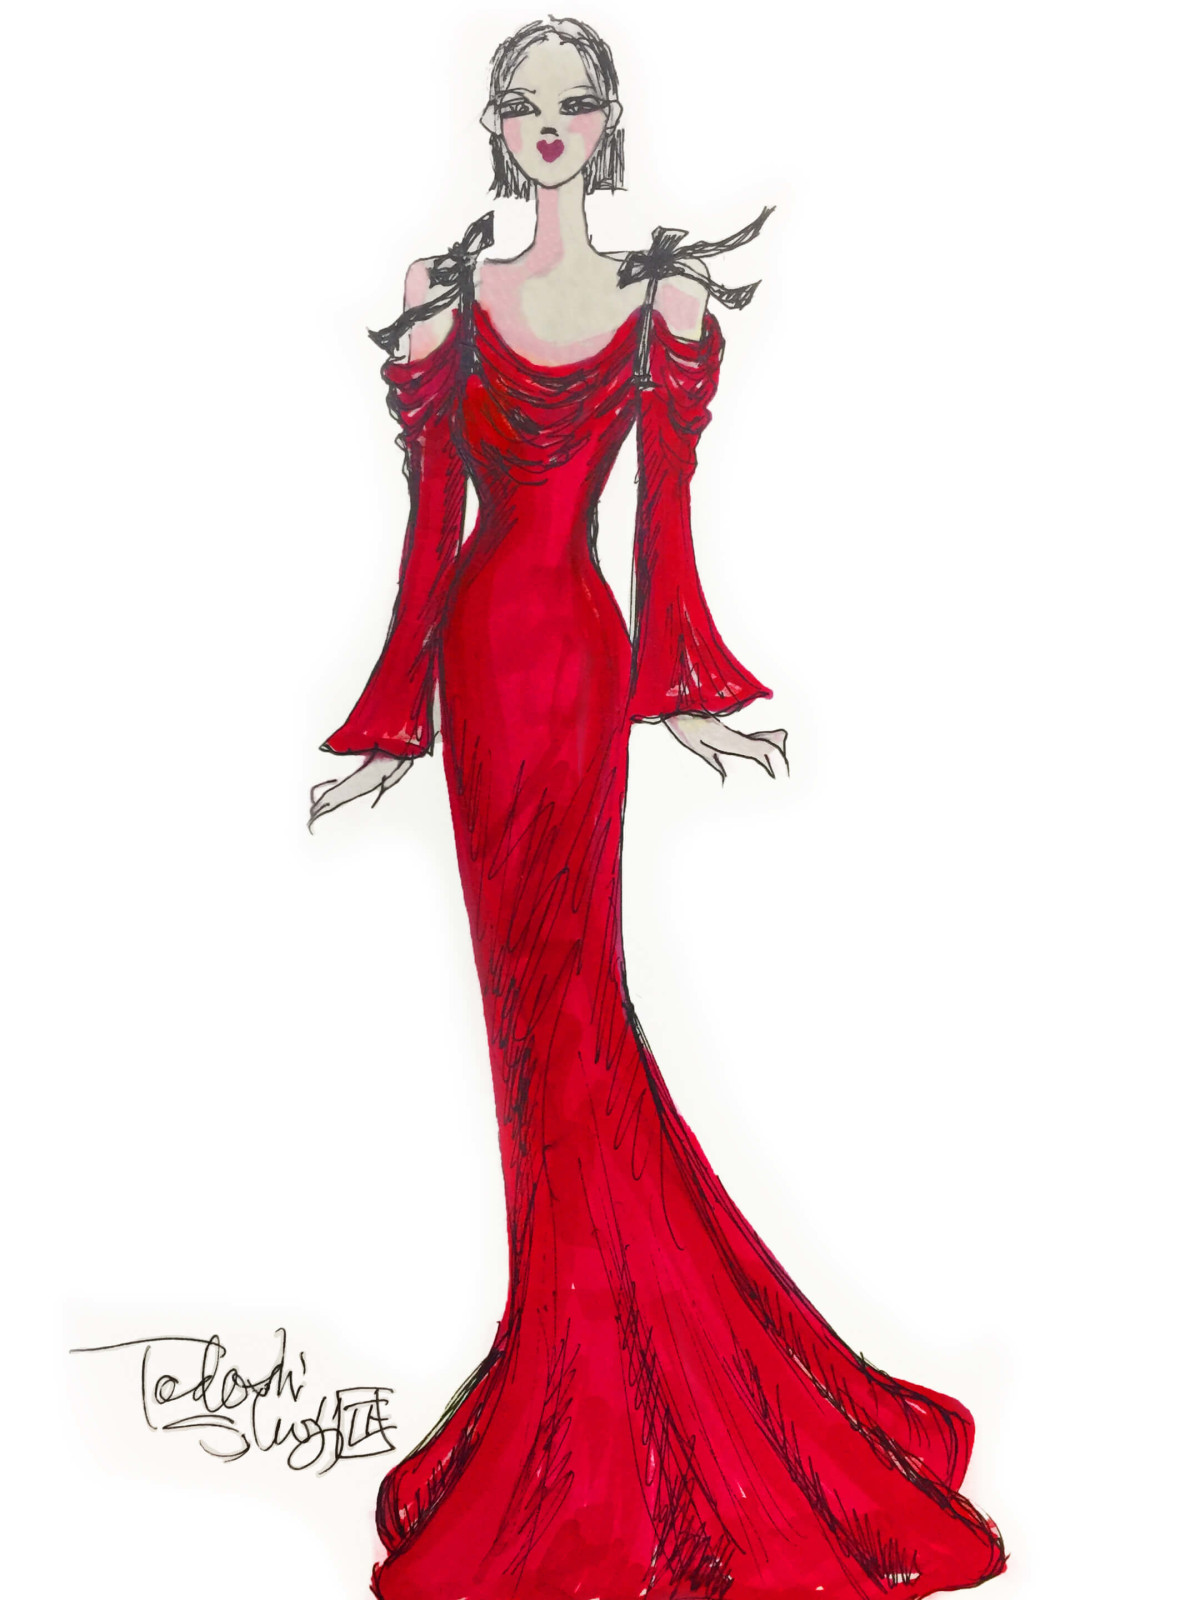 Tadashi Shoji inspiration sketch New York Fashion Week fall 2017